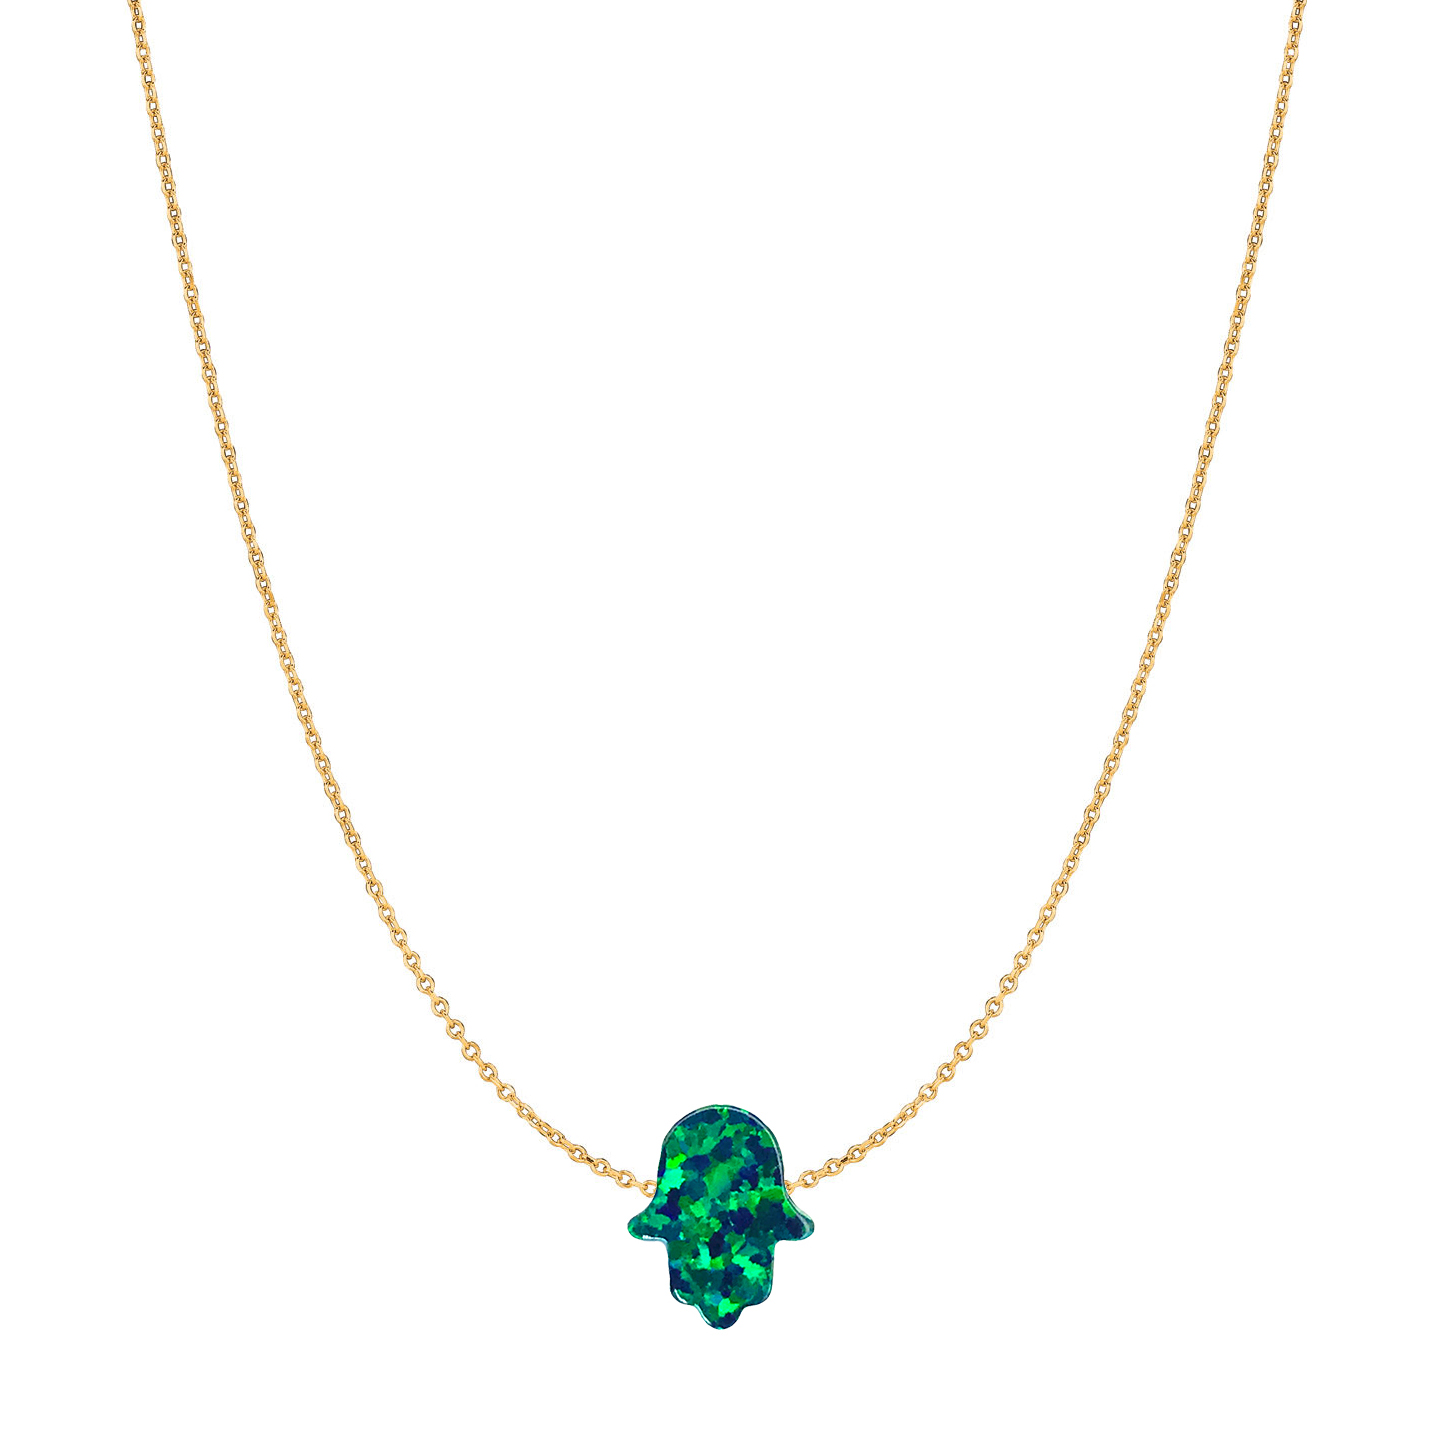 14 Karat Gold Emerald Green Opal Hamsa Necklace